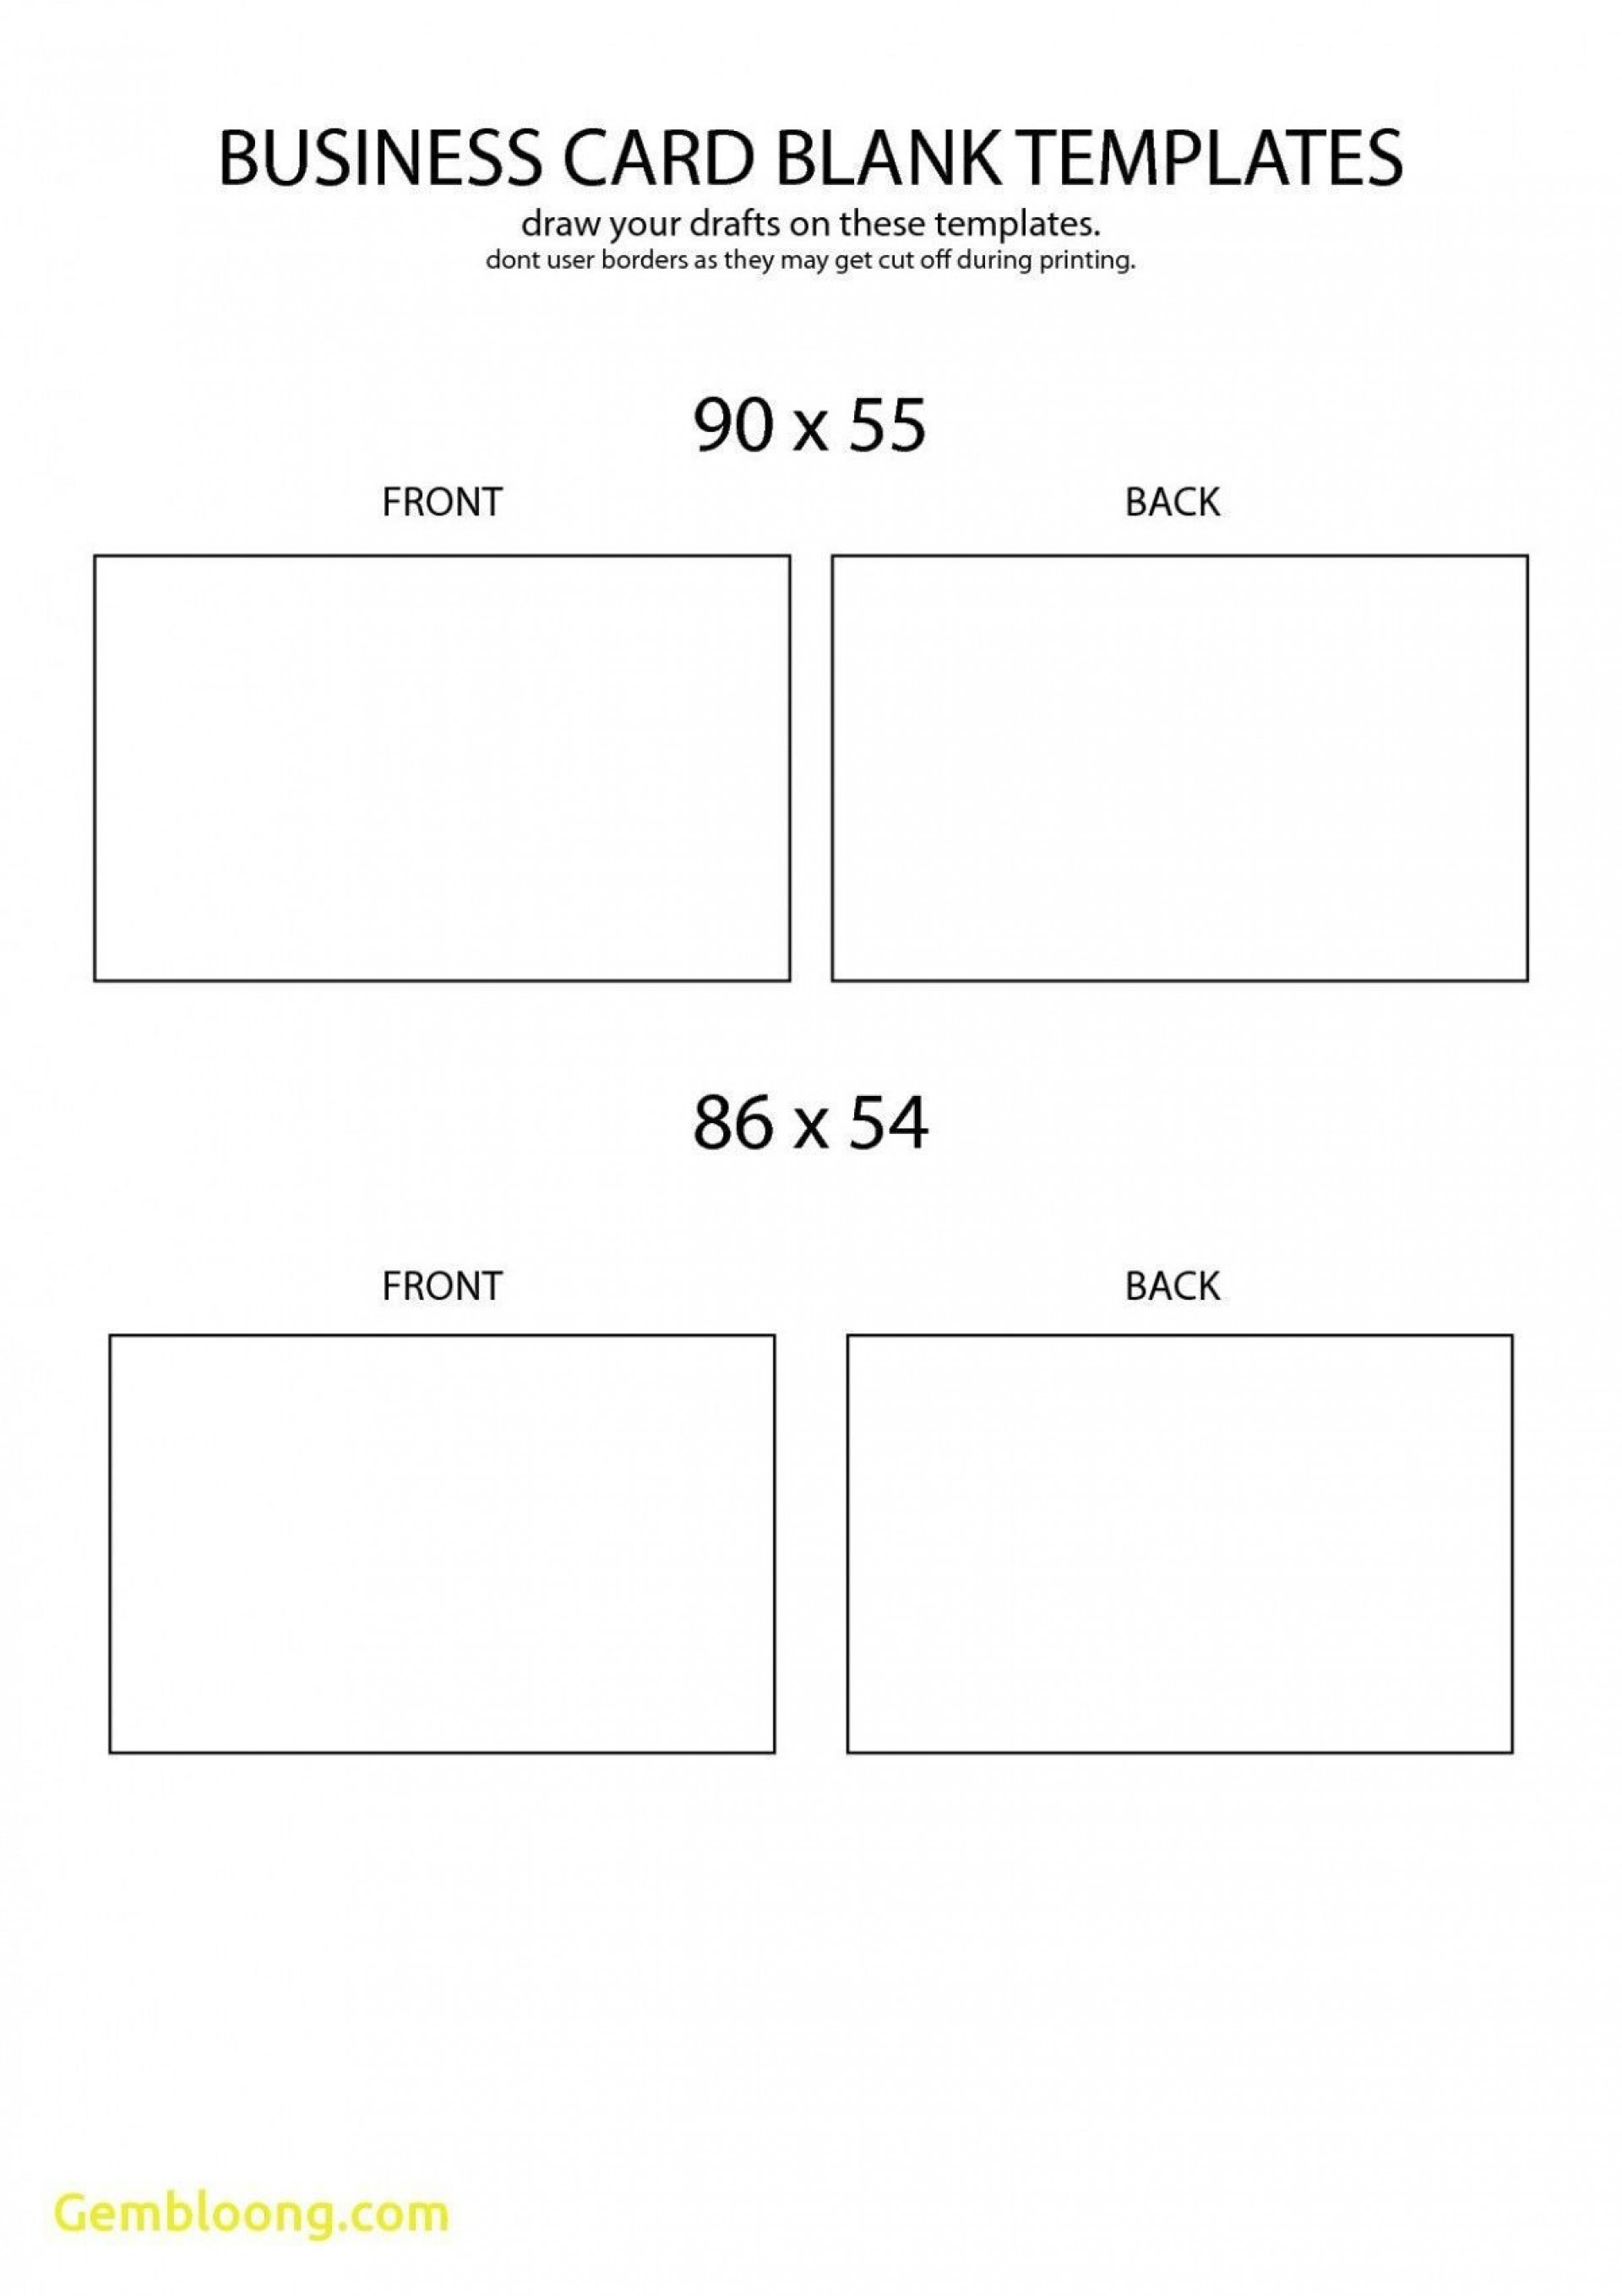 000 Rare Free Blank Busines Card Template High Resolution  Templates Online Printable For Word Download1920